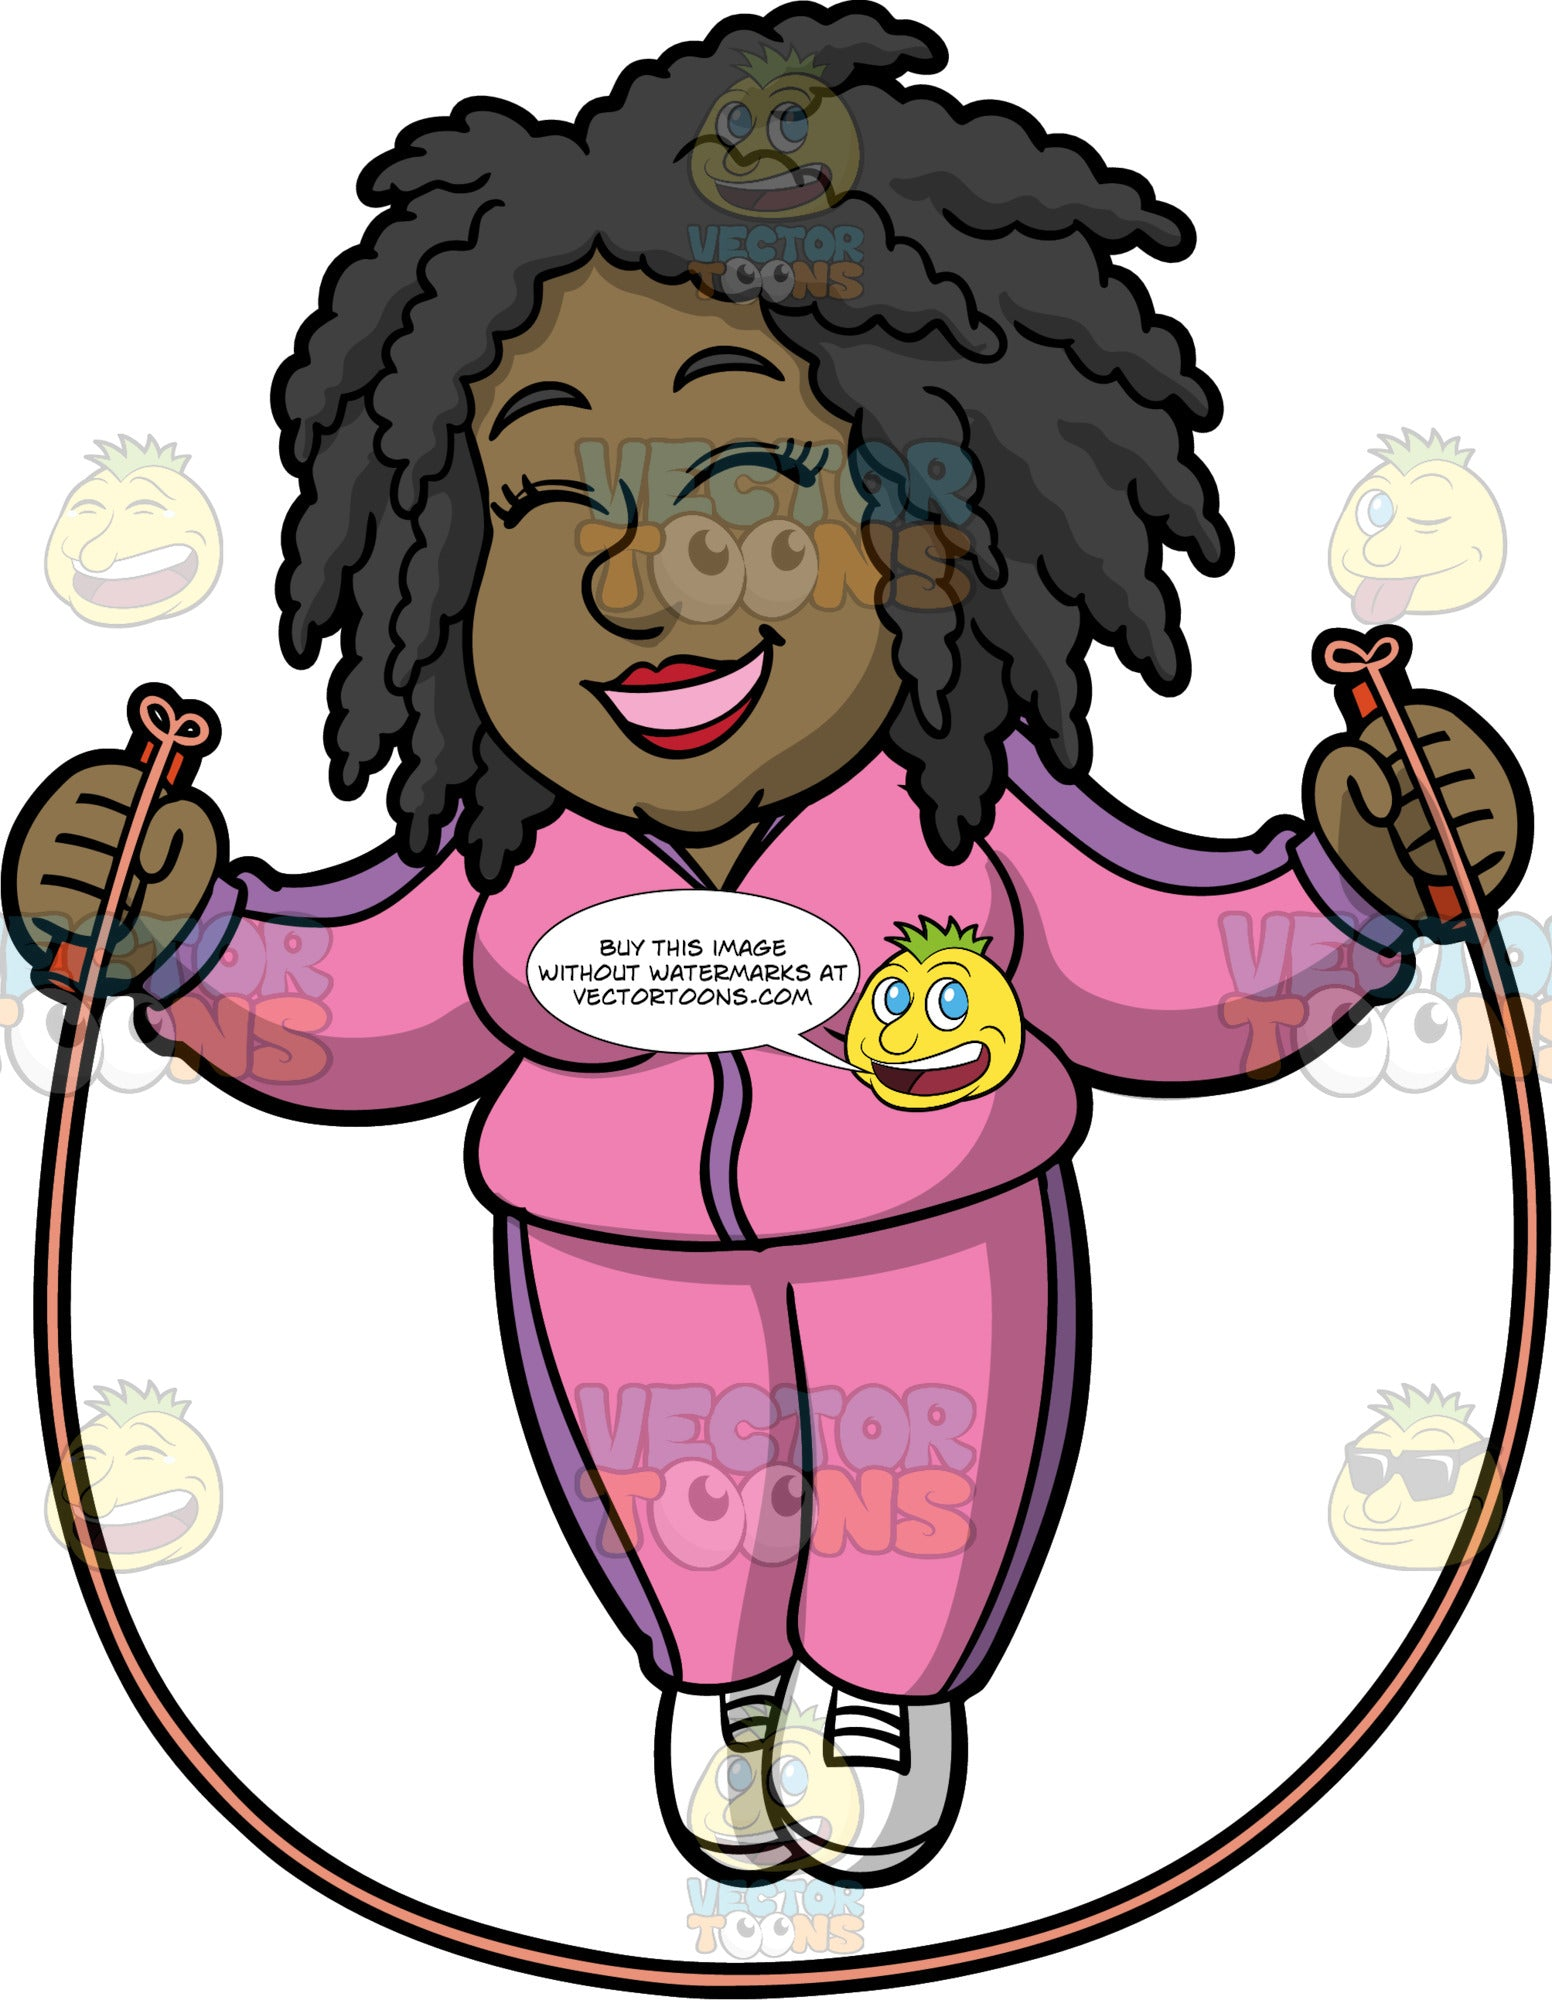 Lisa Having Fun Jumping Rope. A black woman wearing a pink and purple track suit and white running shoes, smiles and closes her eyes while using a skipping rope